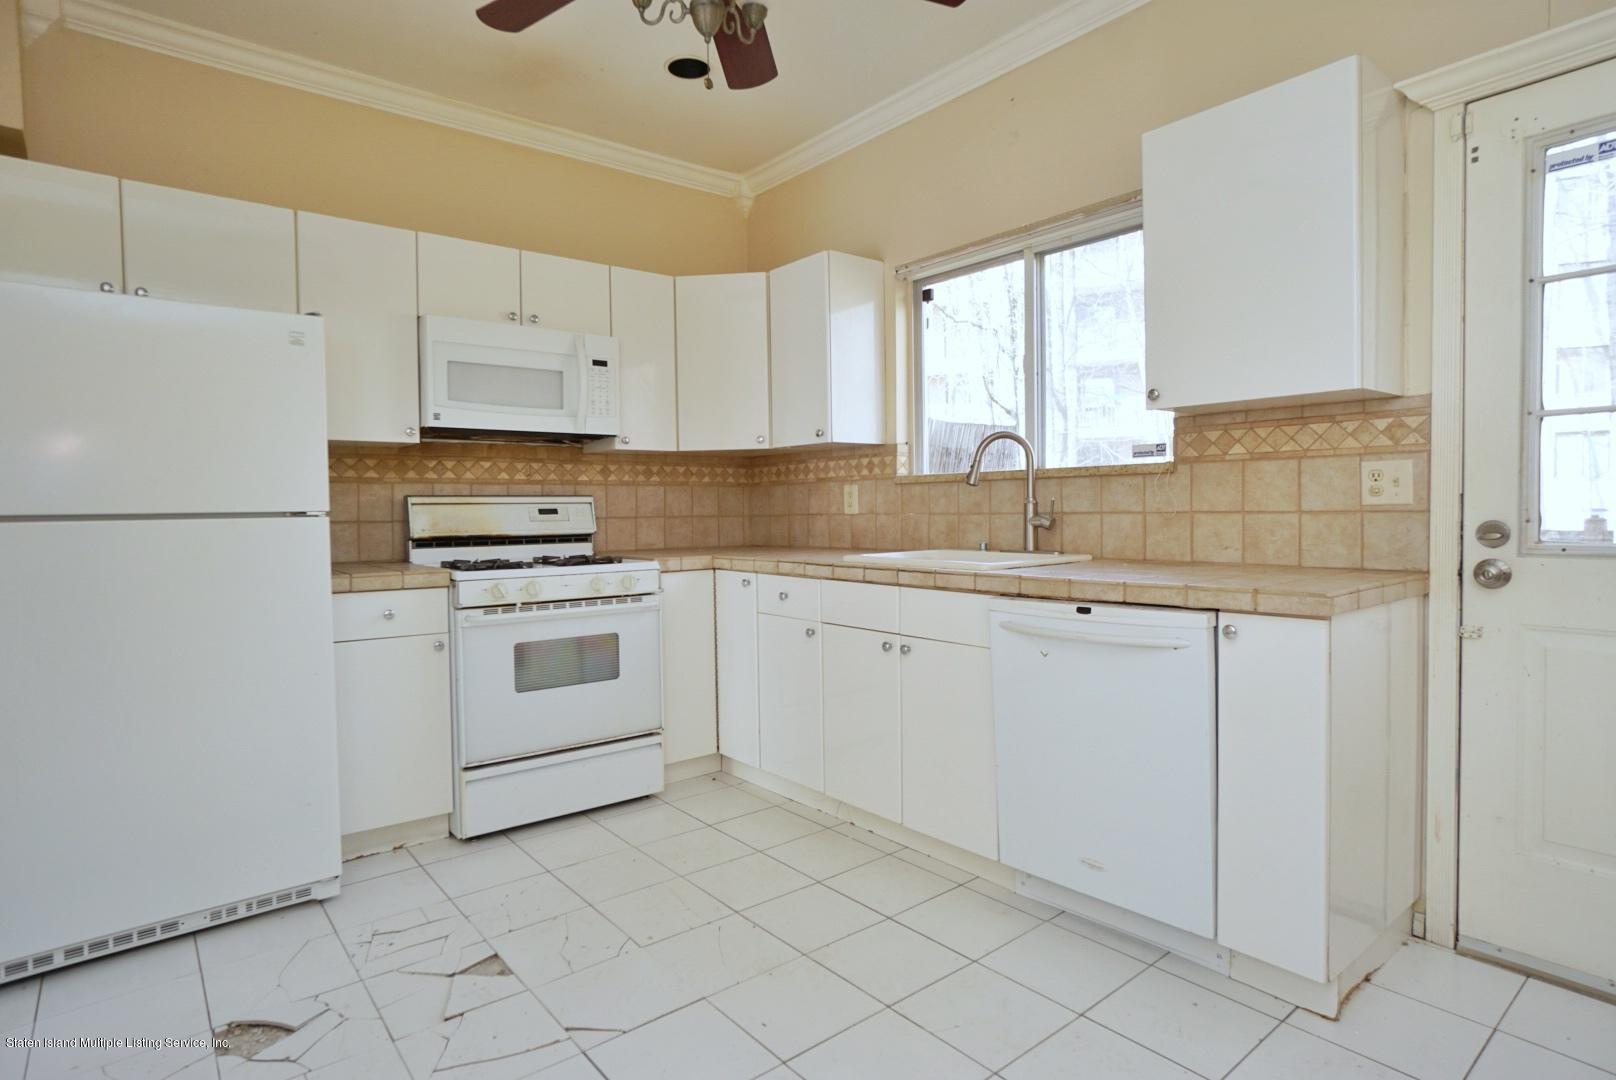 Two Family - Attached 71 Woodcutter Lane  Staten Island, NY 10306, MLS-1136417-8